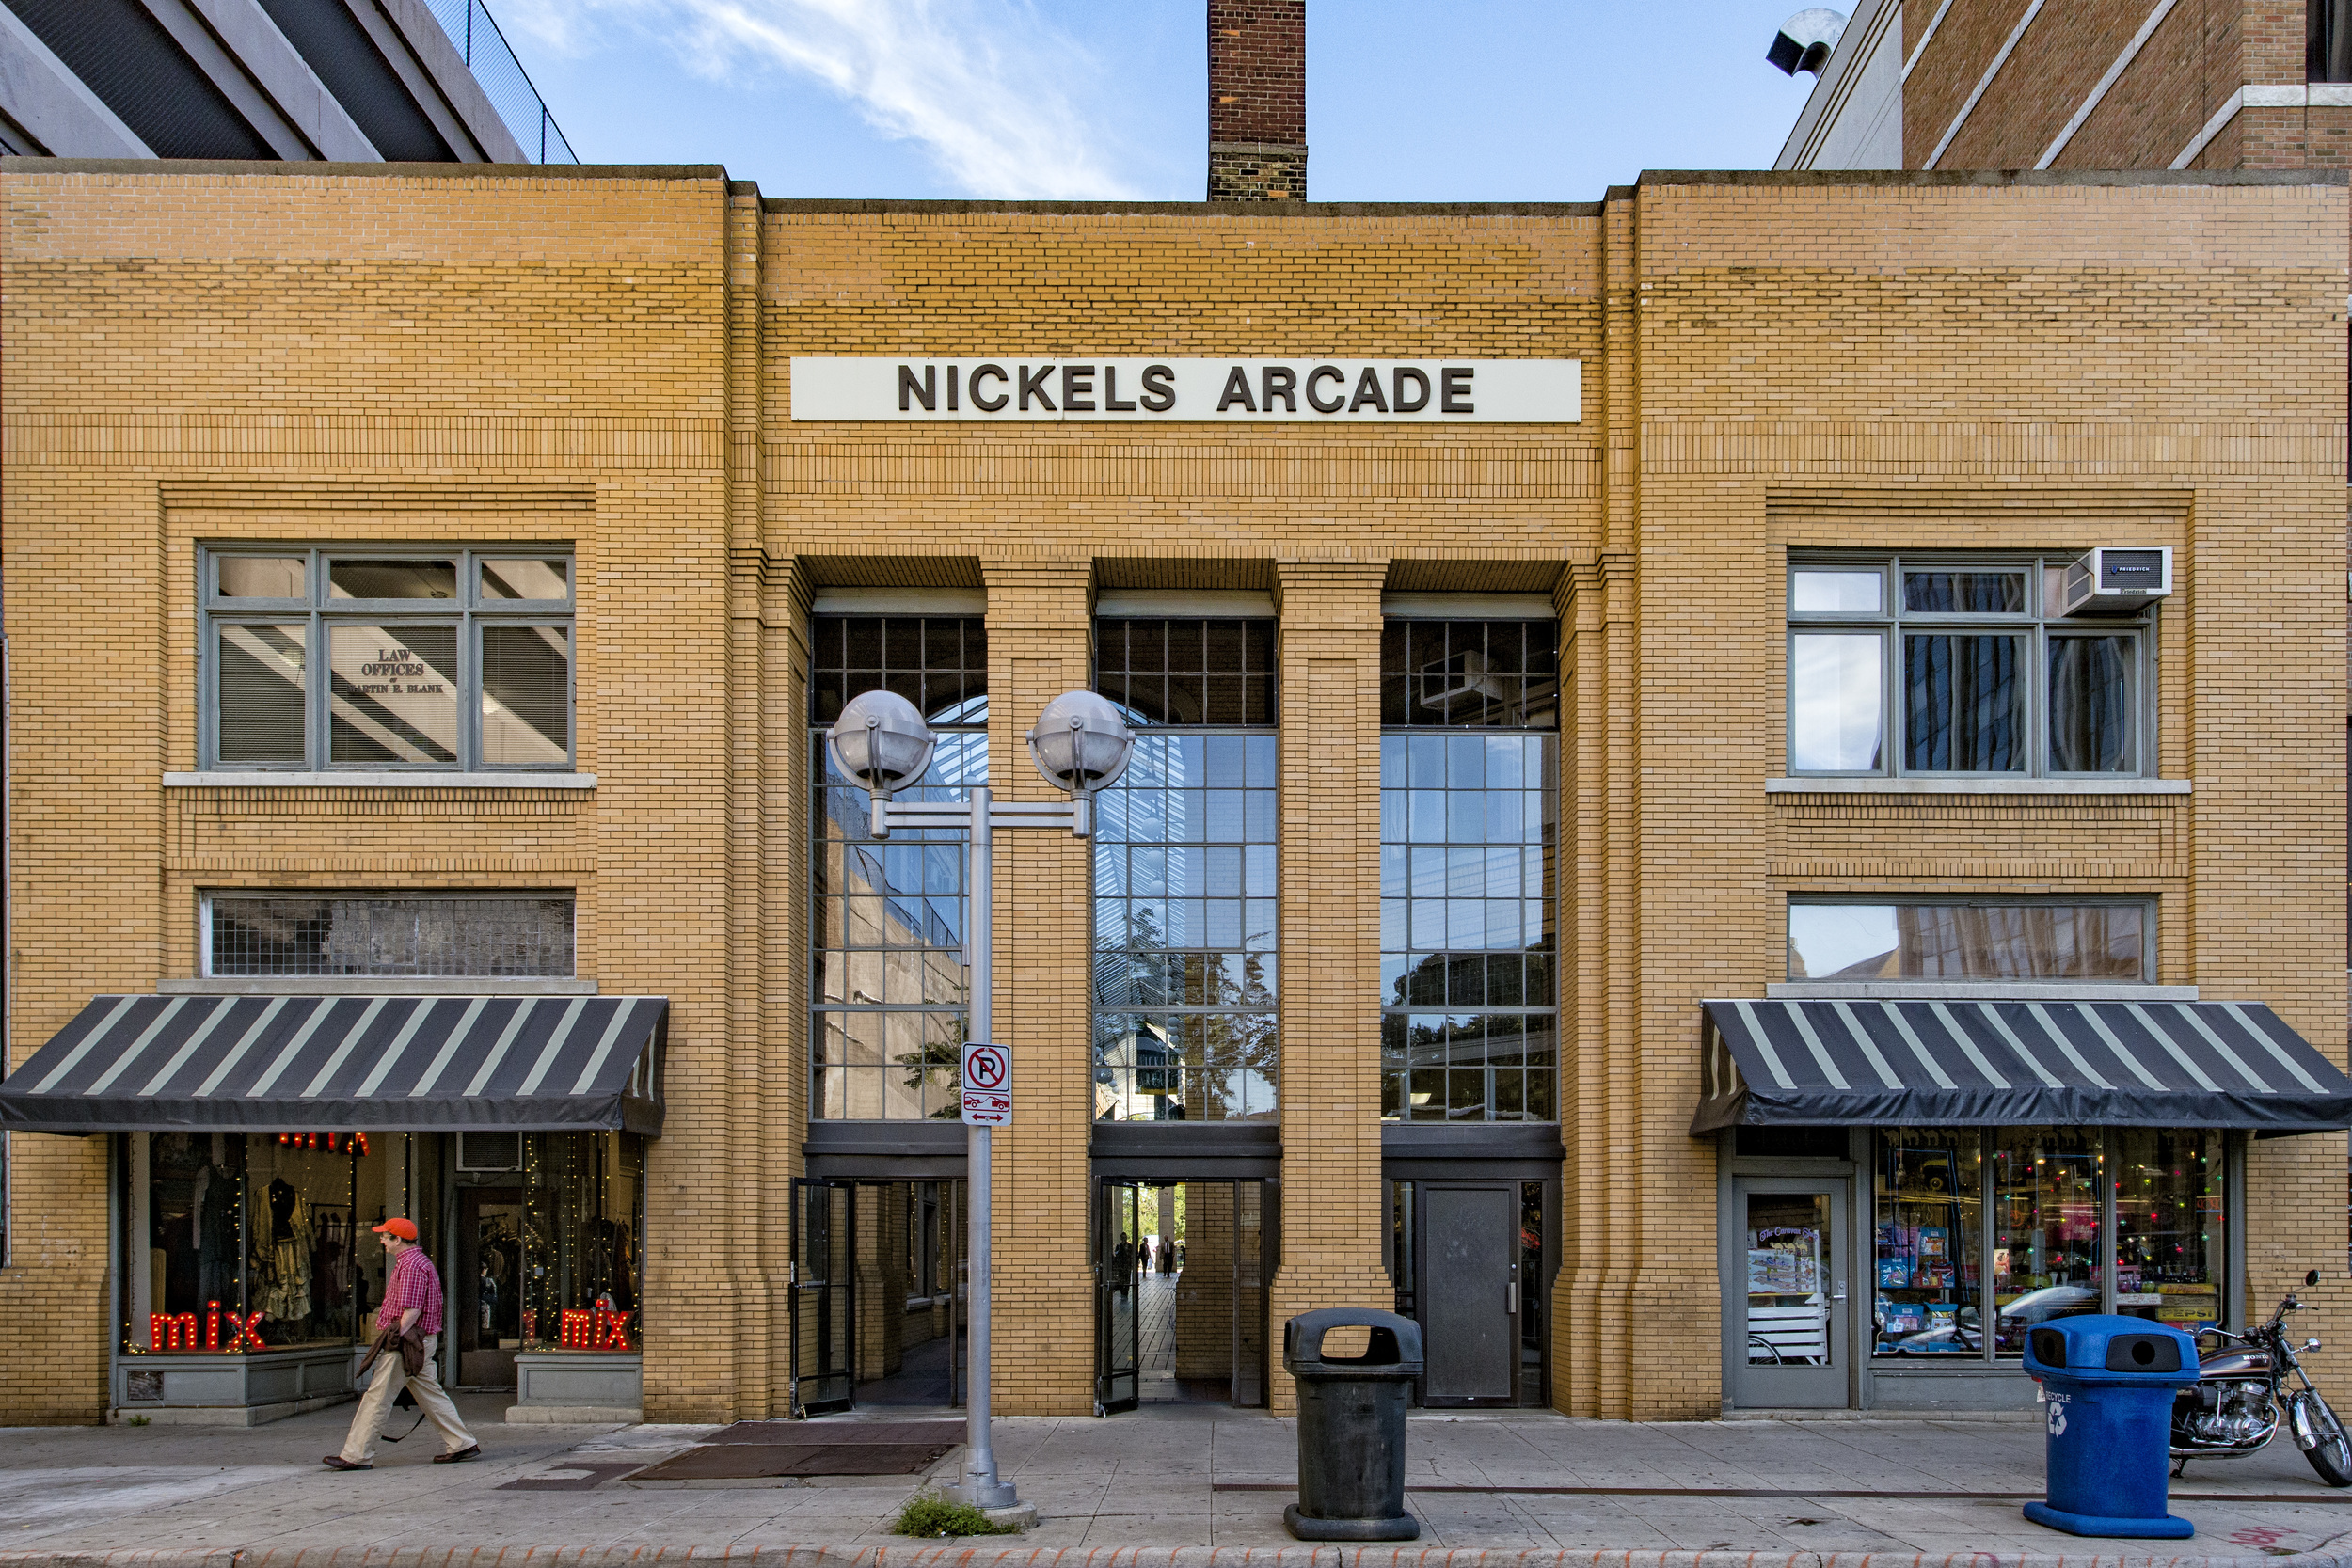 Ann Arbor State Street District Nickels Arcade